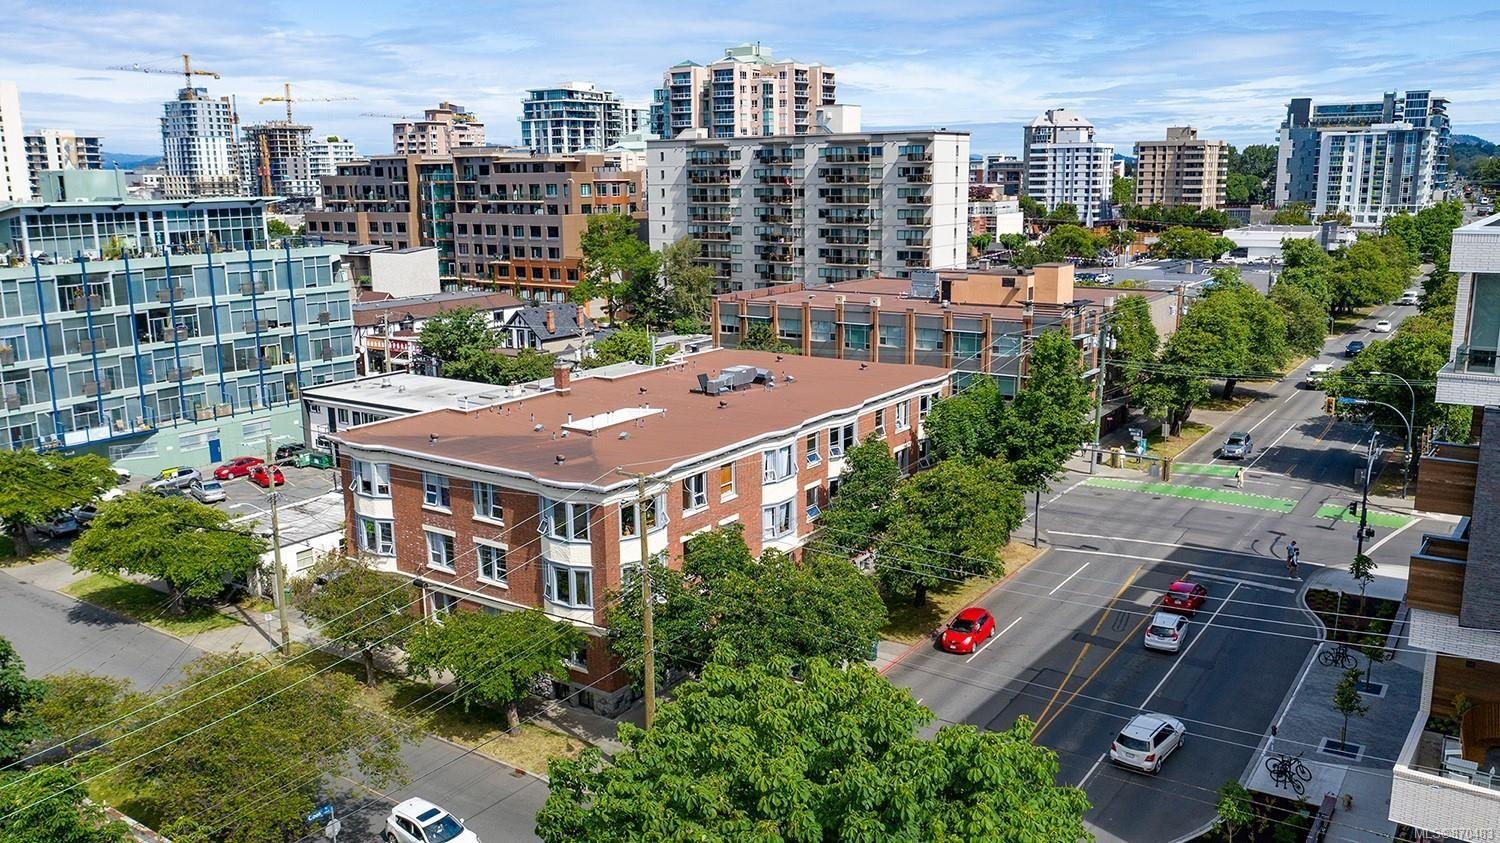 Main Photo: 1030 Cook St in : Vi Downtown Multi Family for sale (Victoria)  : MLS®# 870483